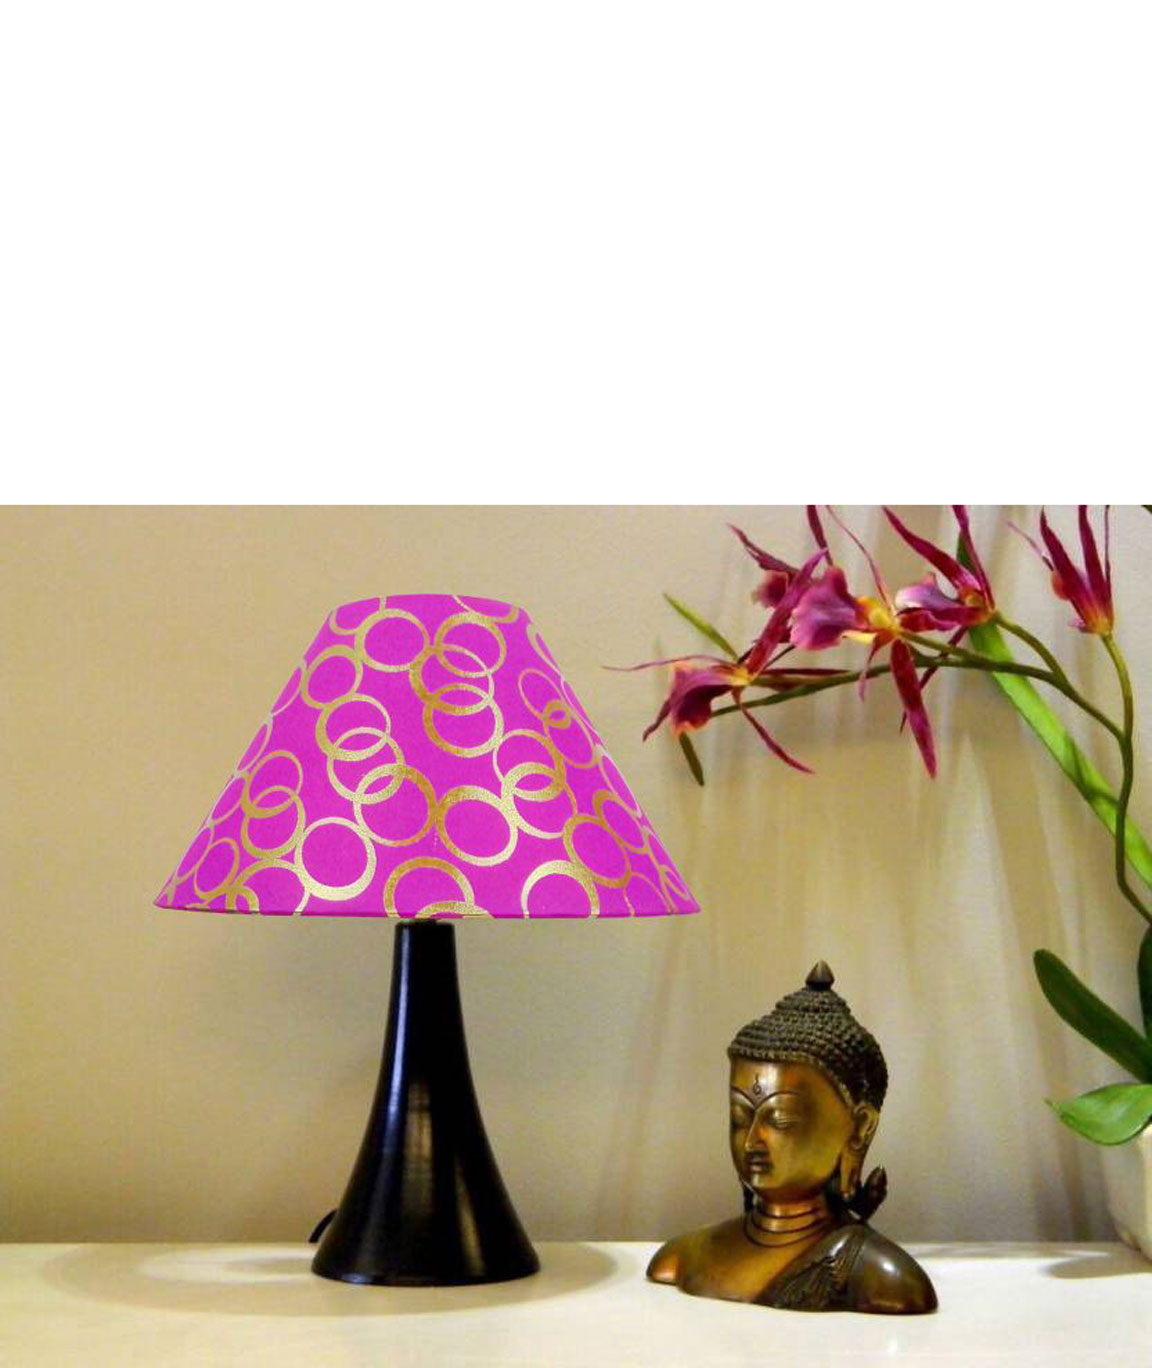 RDC Black Conical Stand Table Lamp with 10 Inches Round Pink Golden Polka Dots Designer Lamp Shade